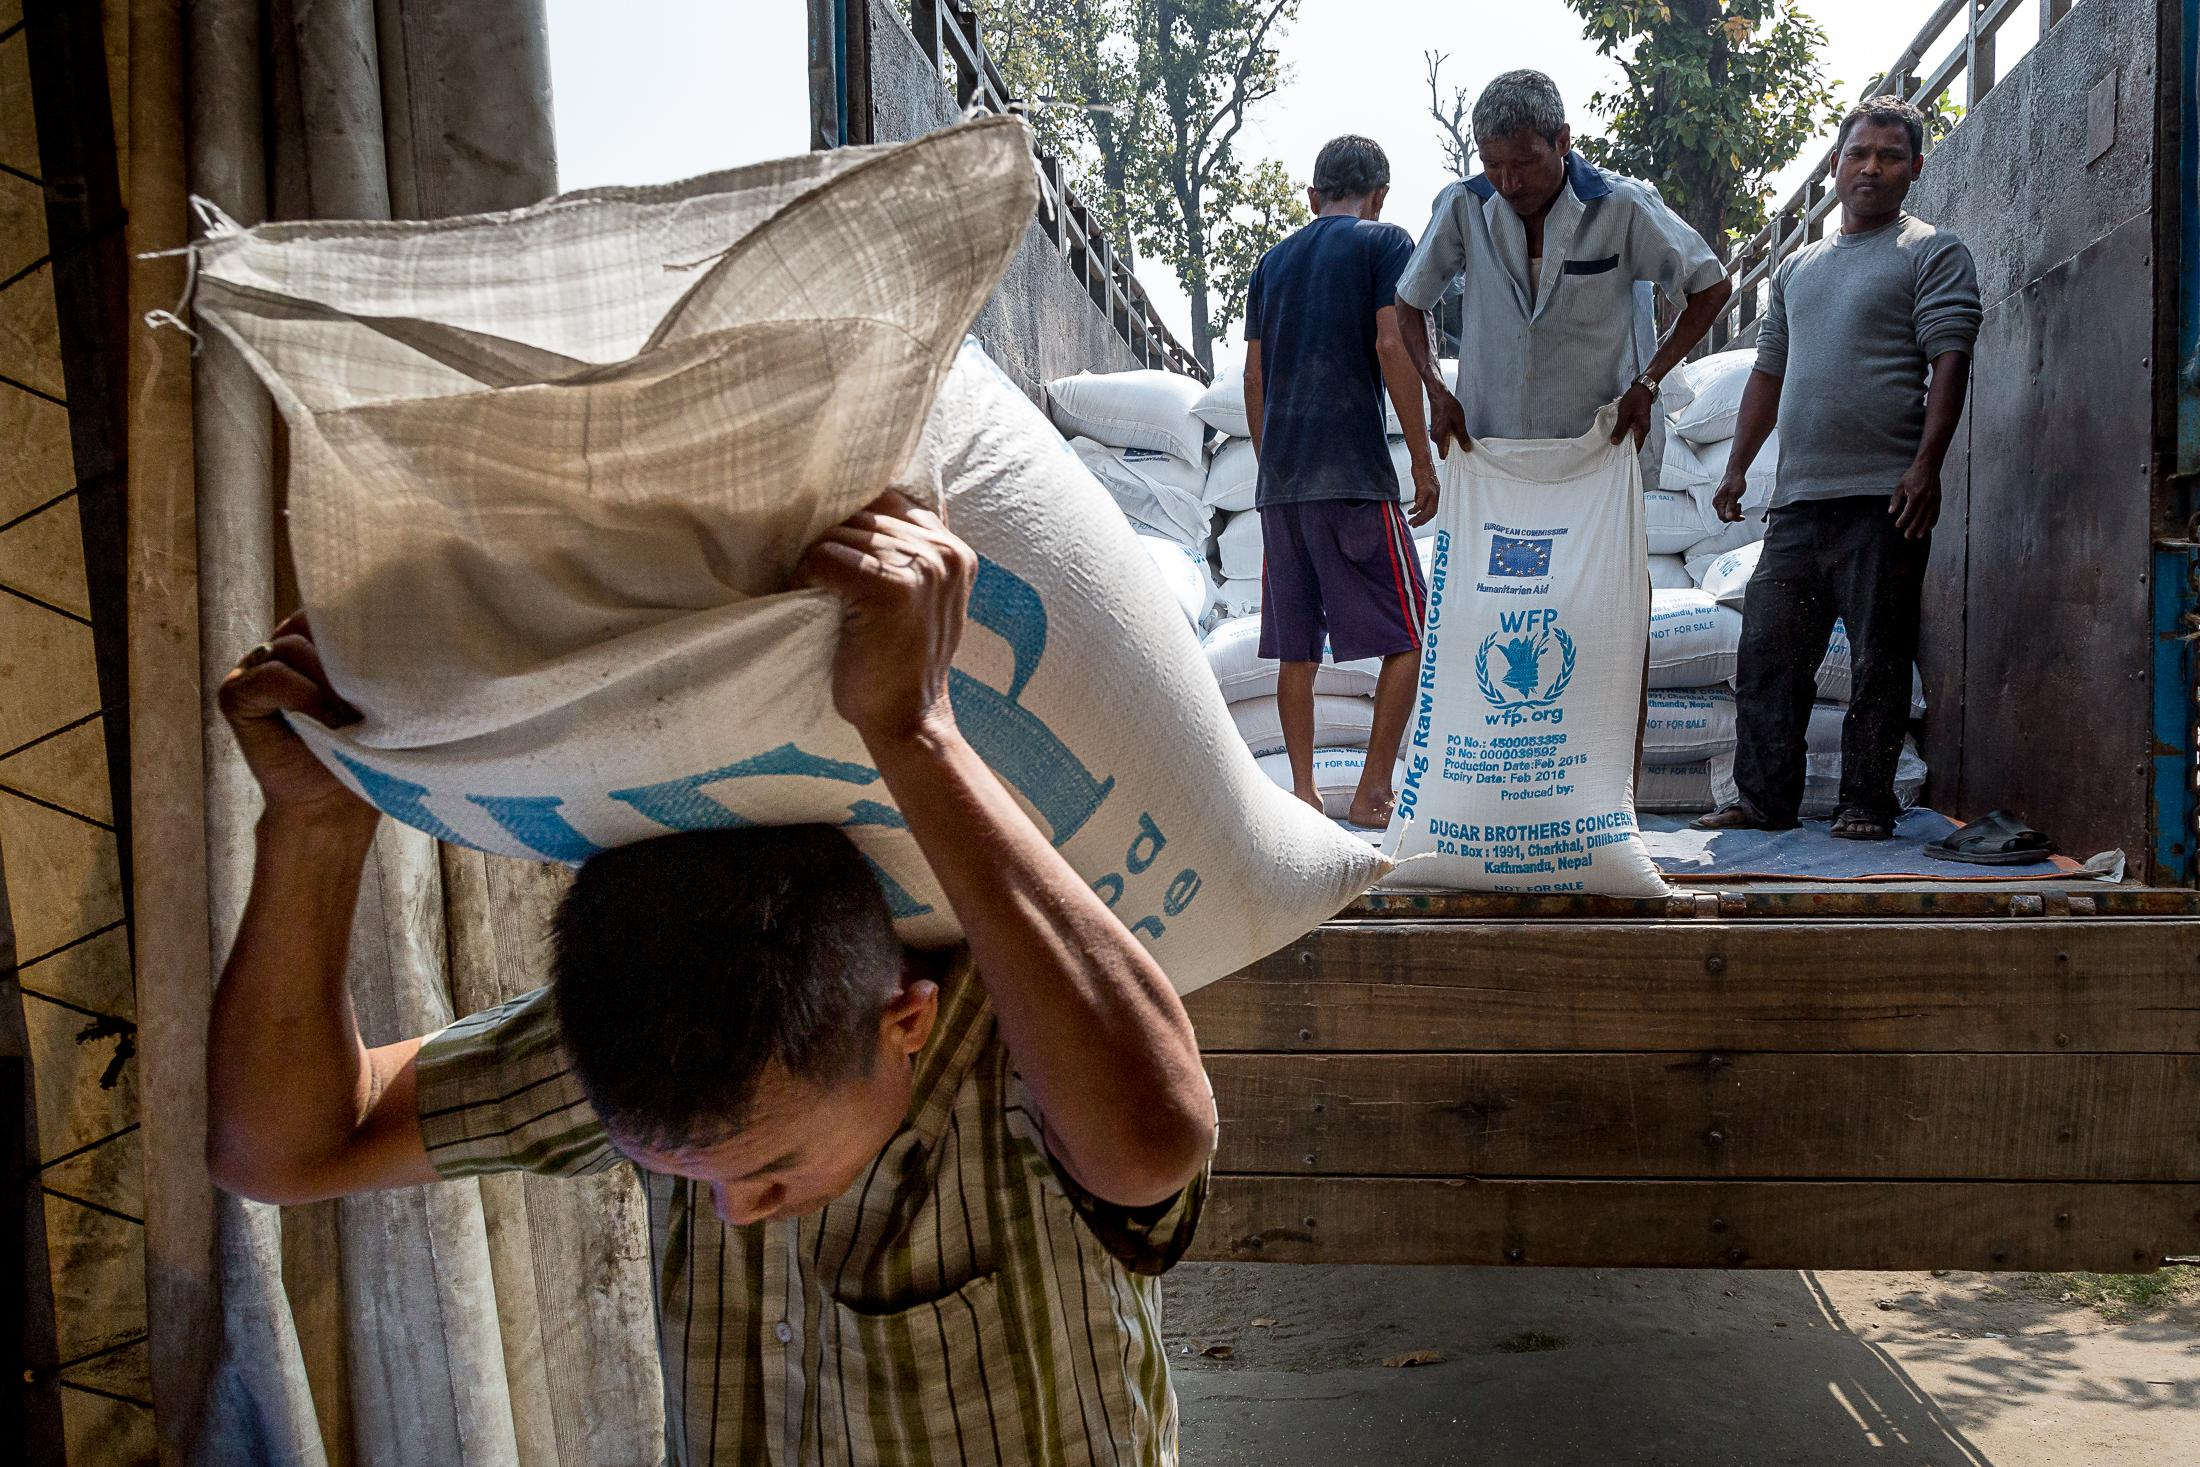 BELDANGI, NEPAL - MARCH 13: A worker carries a sack filled with rice inside one of the World Food Programme rice storage wards in the Beldangi 2 refugee camp on March 13, 2015 in Beldangi, Nepal. Photo: © Omar Havana / Getty Images